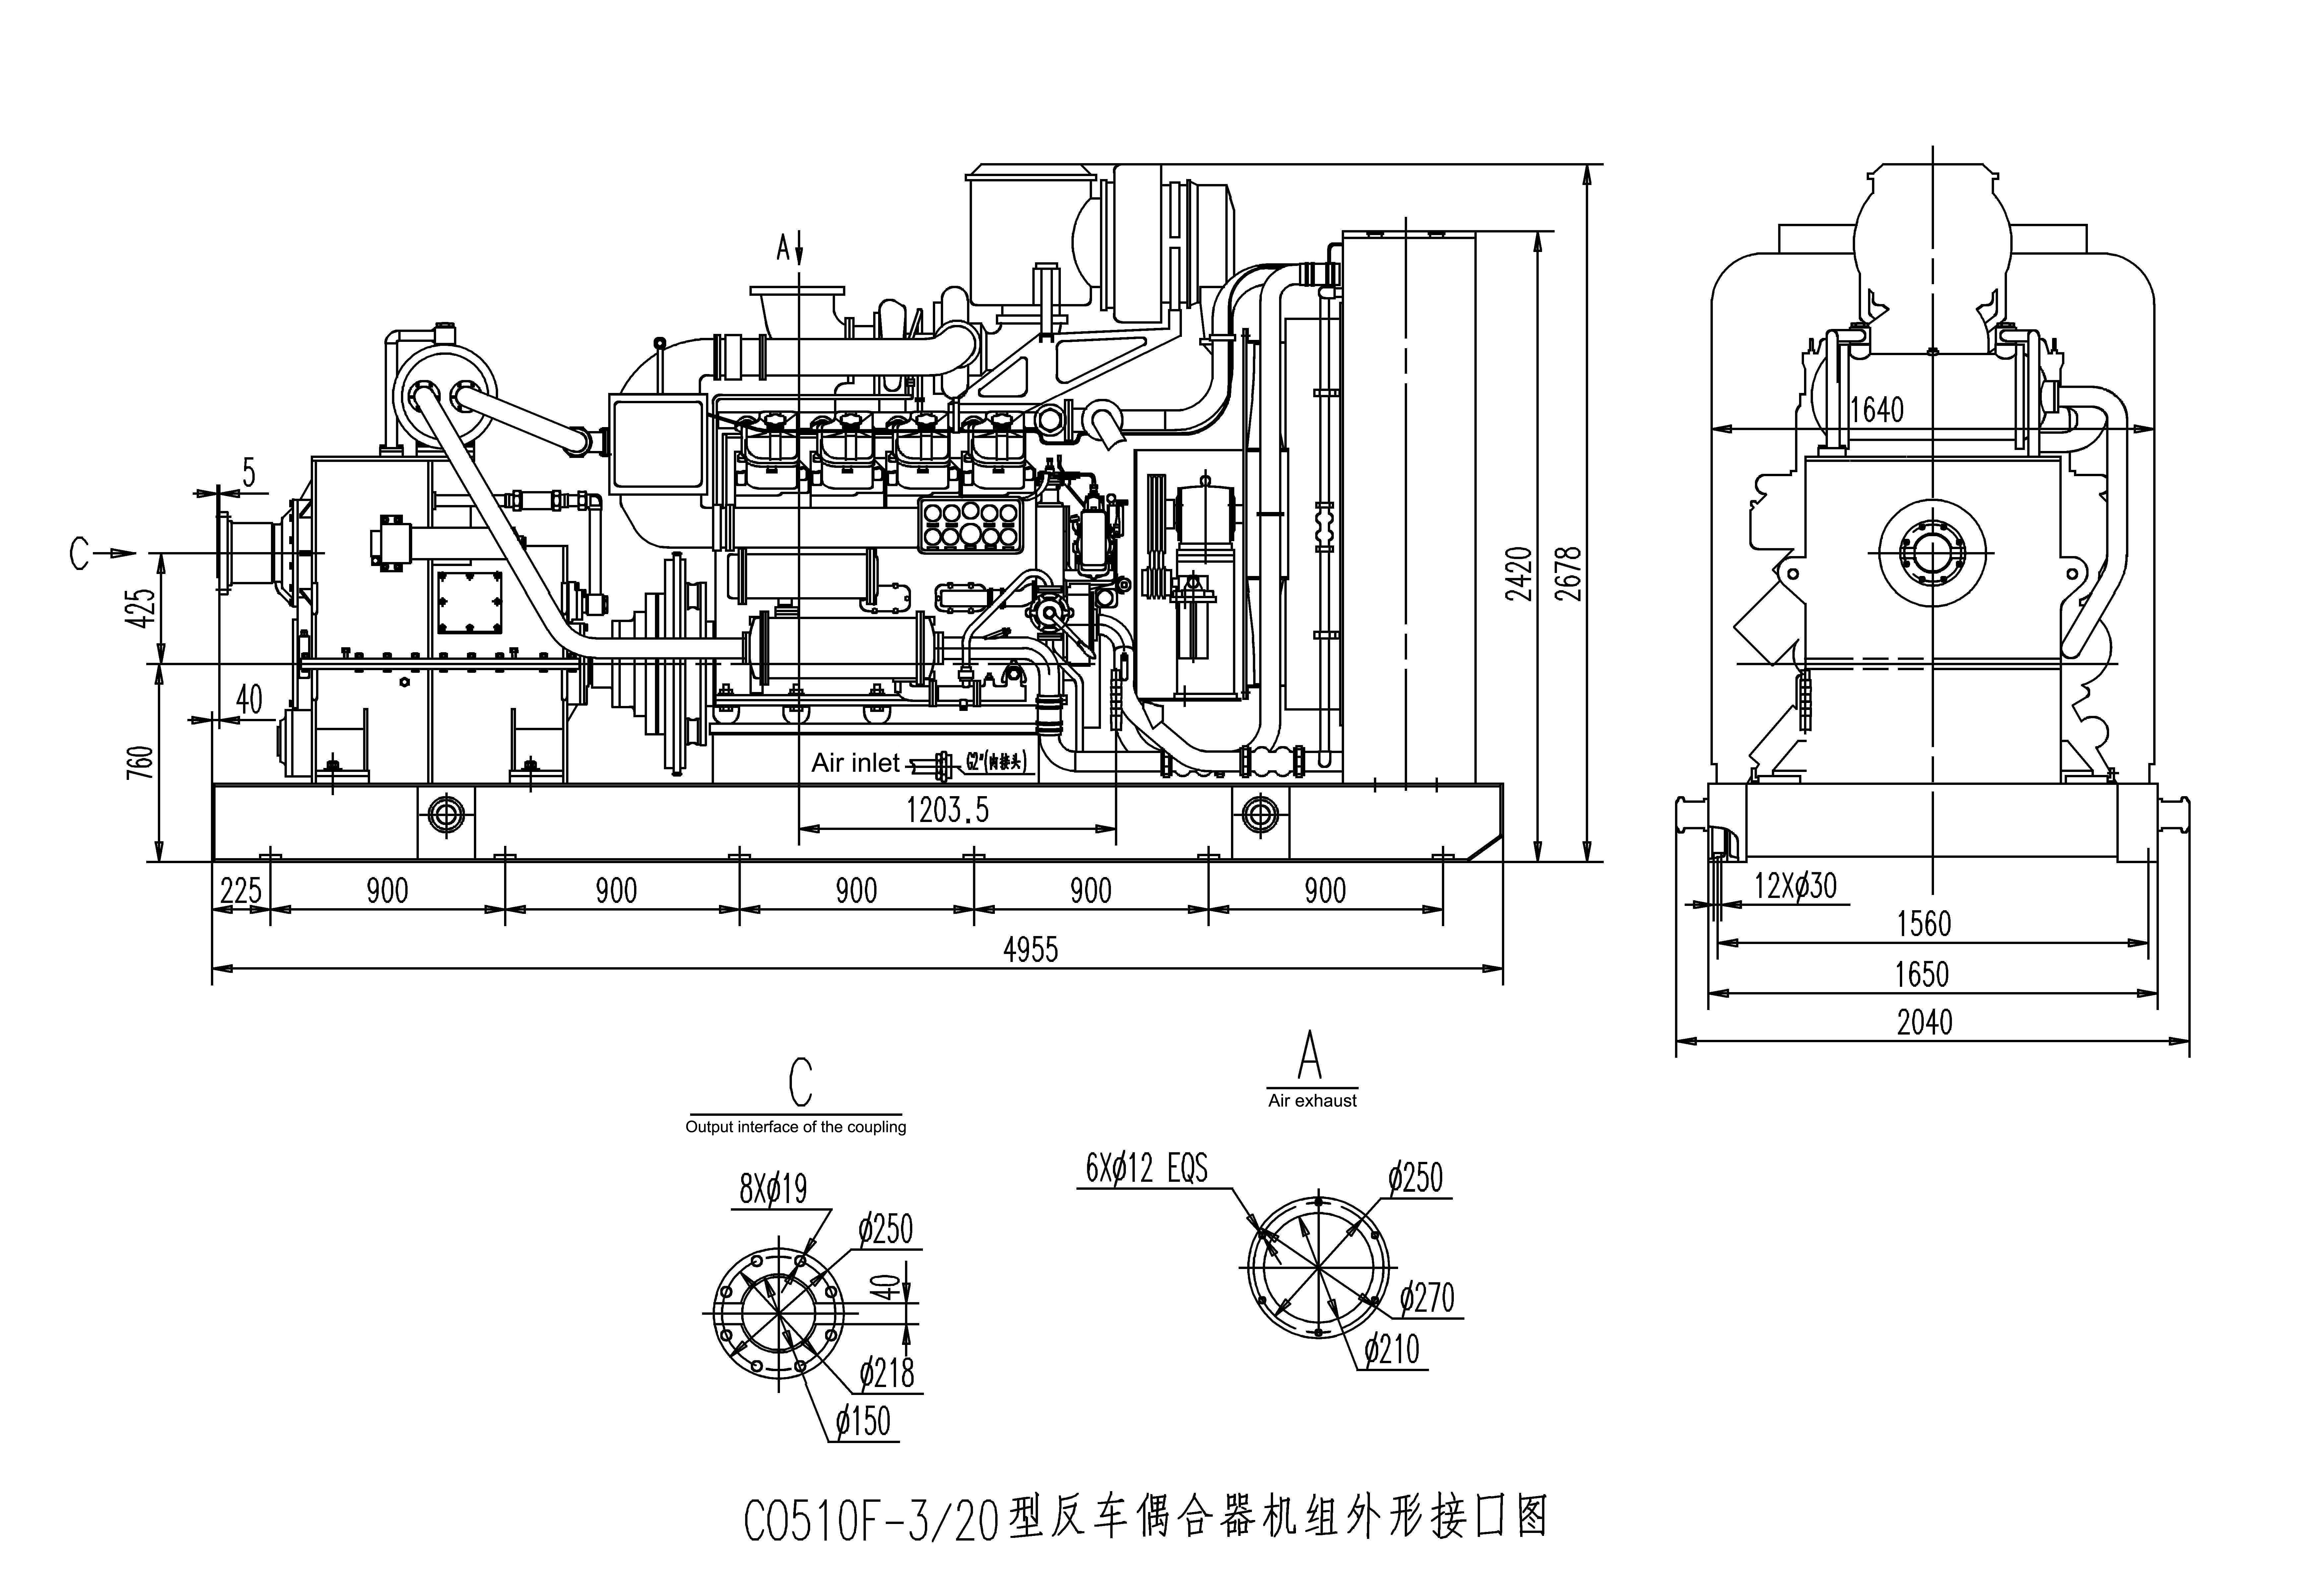 Quotation and specification for 500KW sel engine coupling set